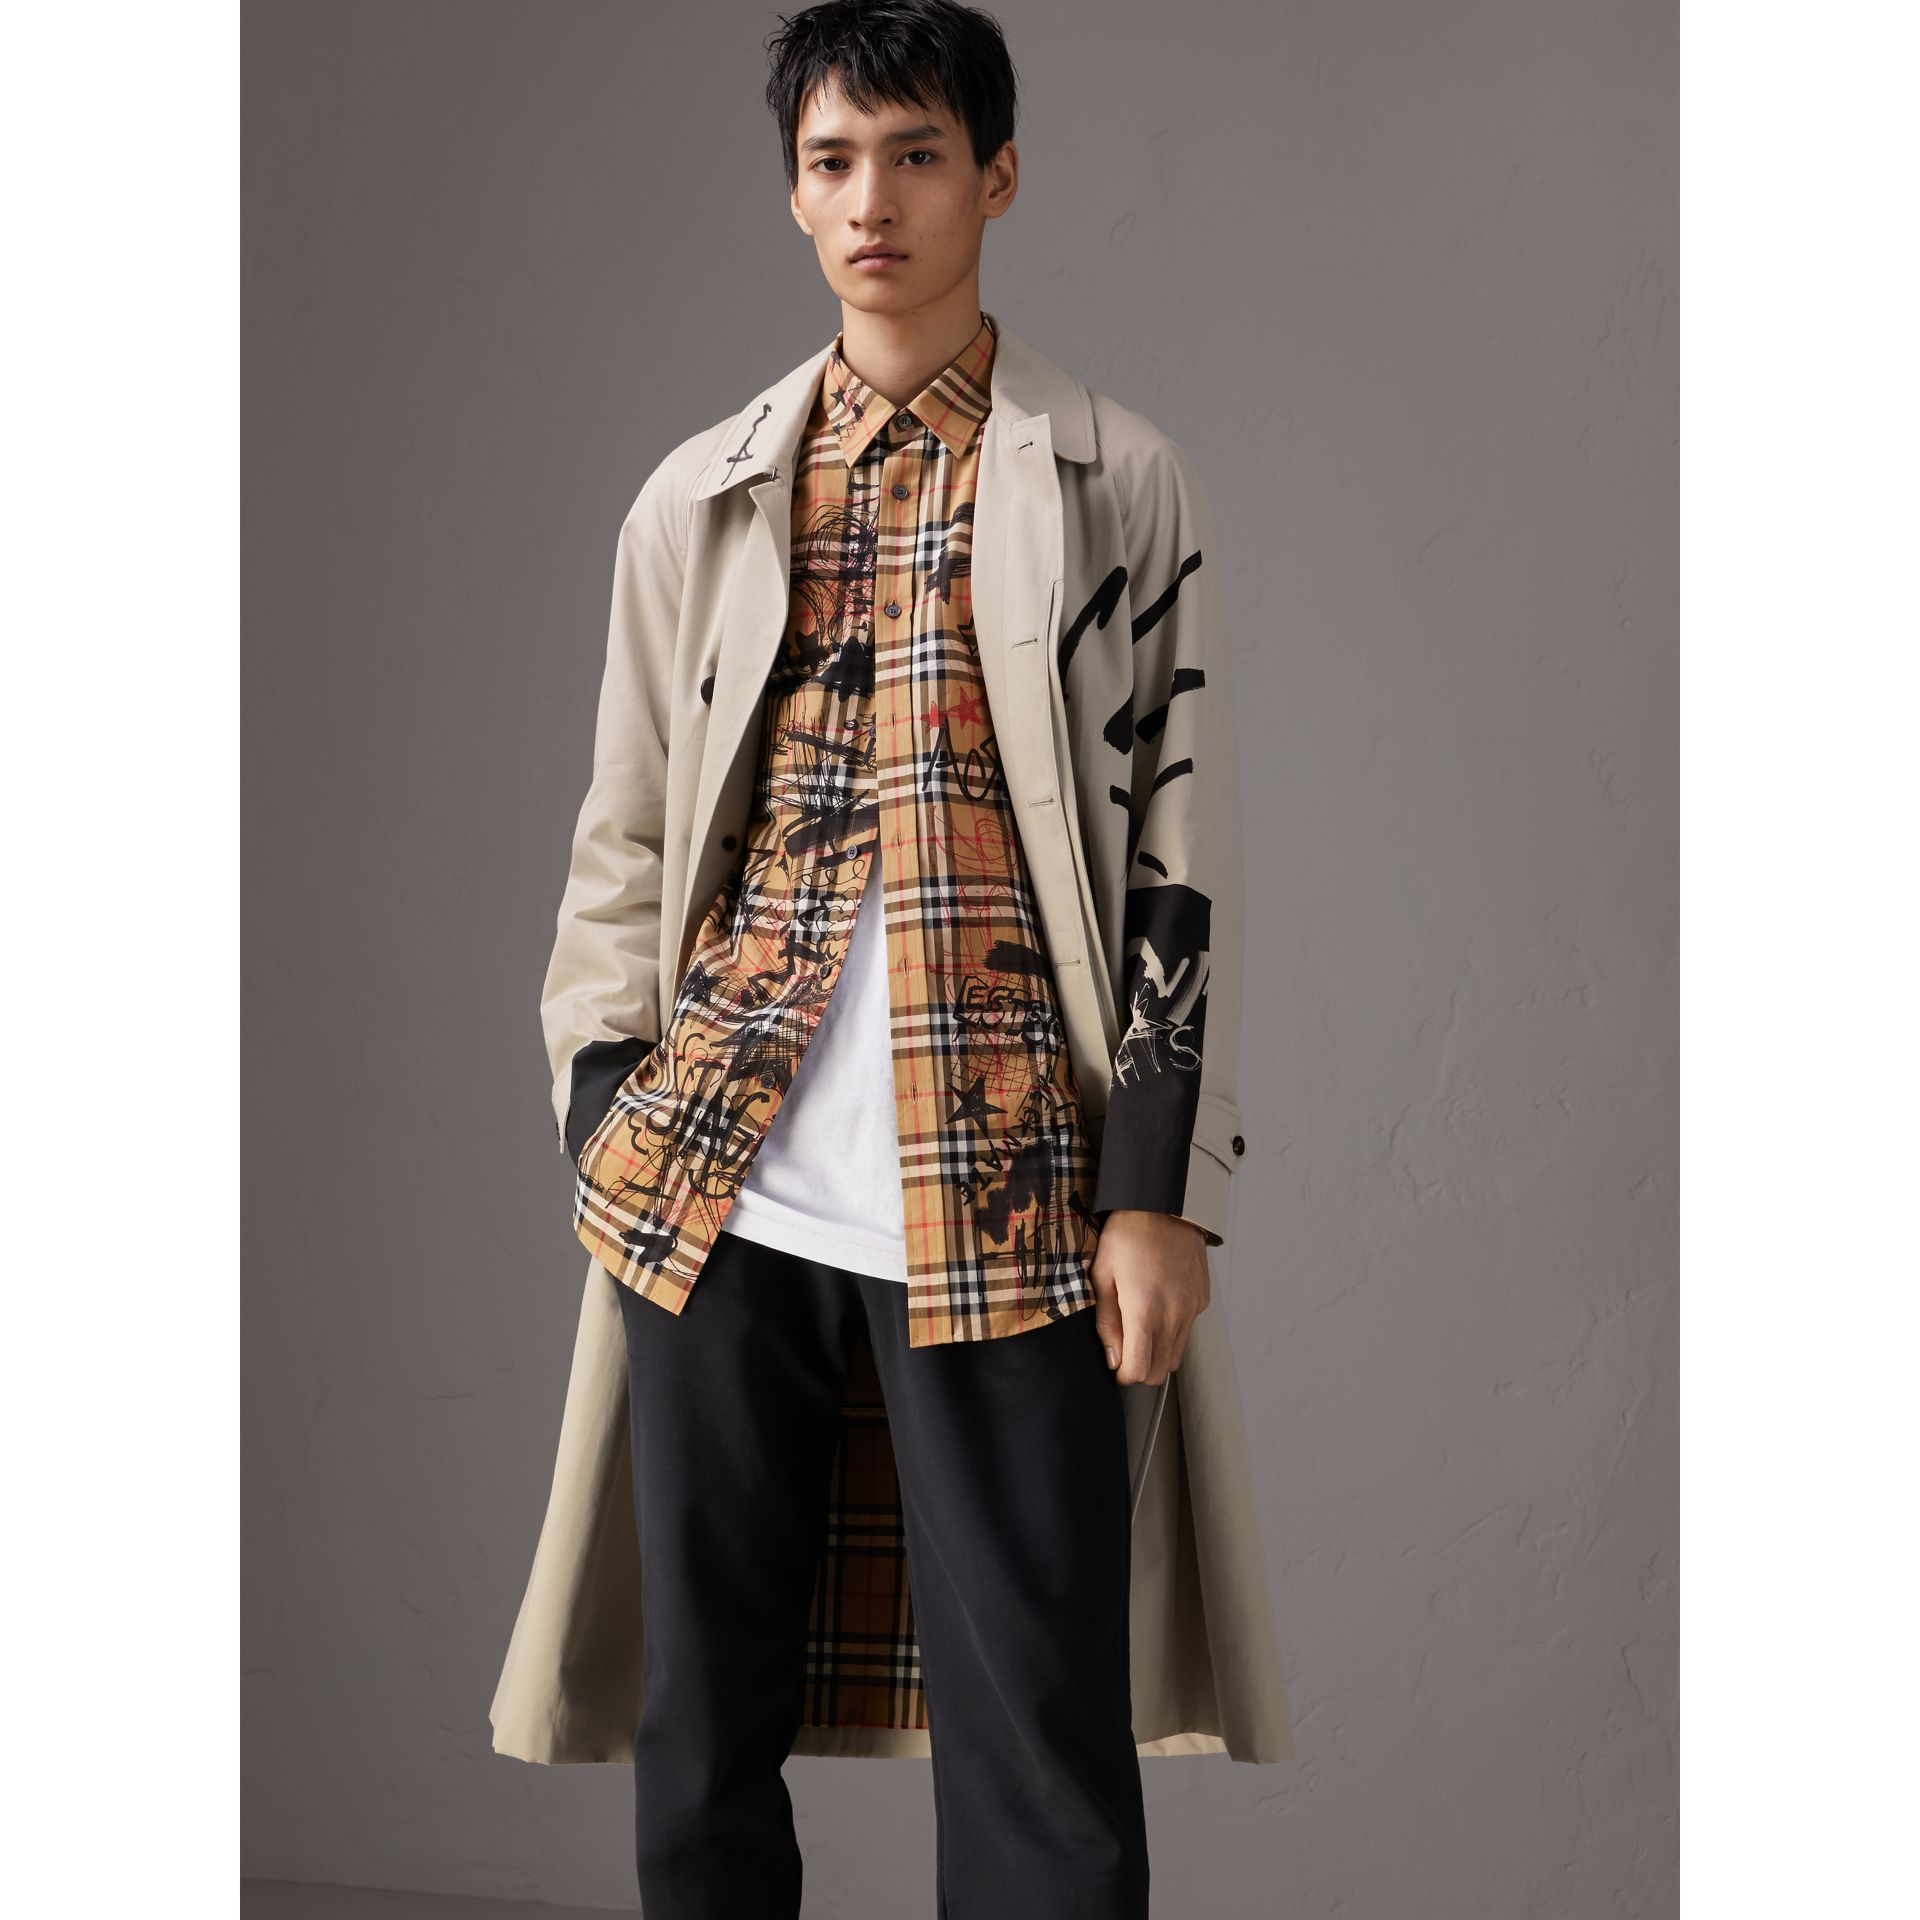 Burberry x Kris Wu Gabardine Car Coat in Stone - Men | Burberry Singapore - gallery image 6